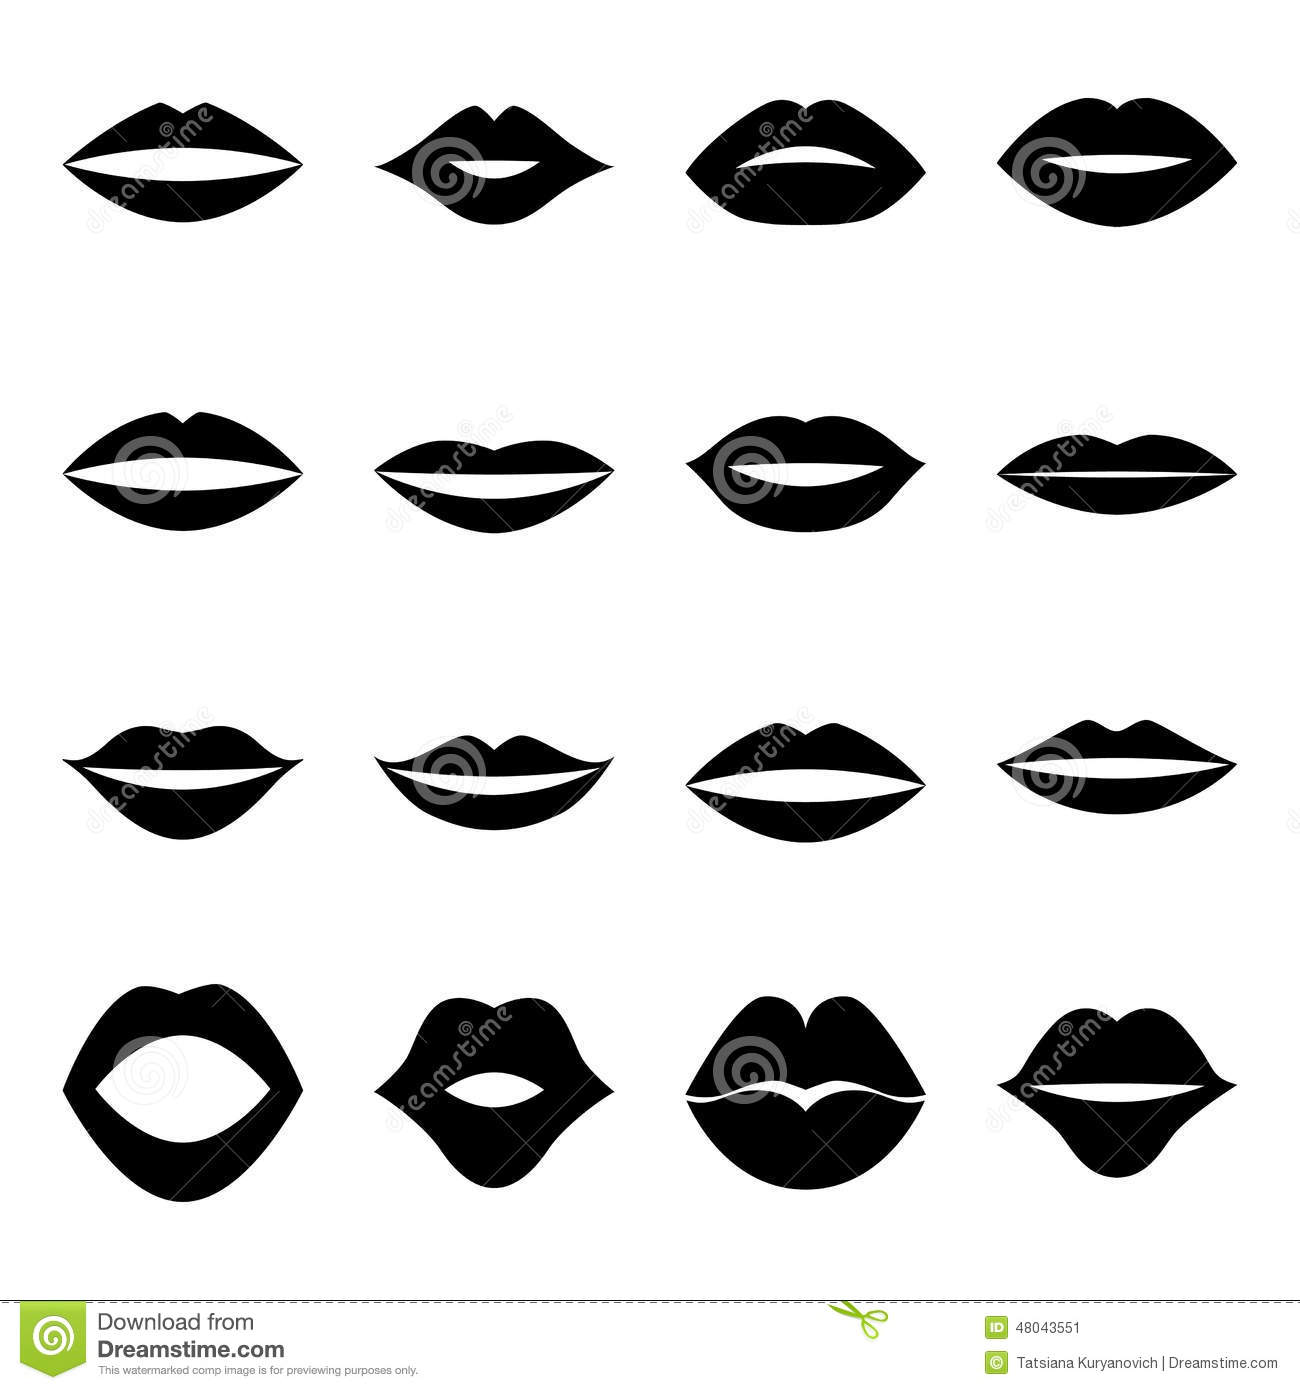 Fashion design contest 2017 - Collection Of Lips Illustration Stock Vector Image